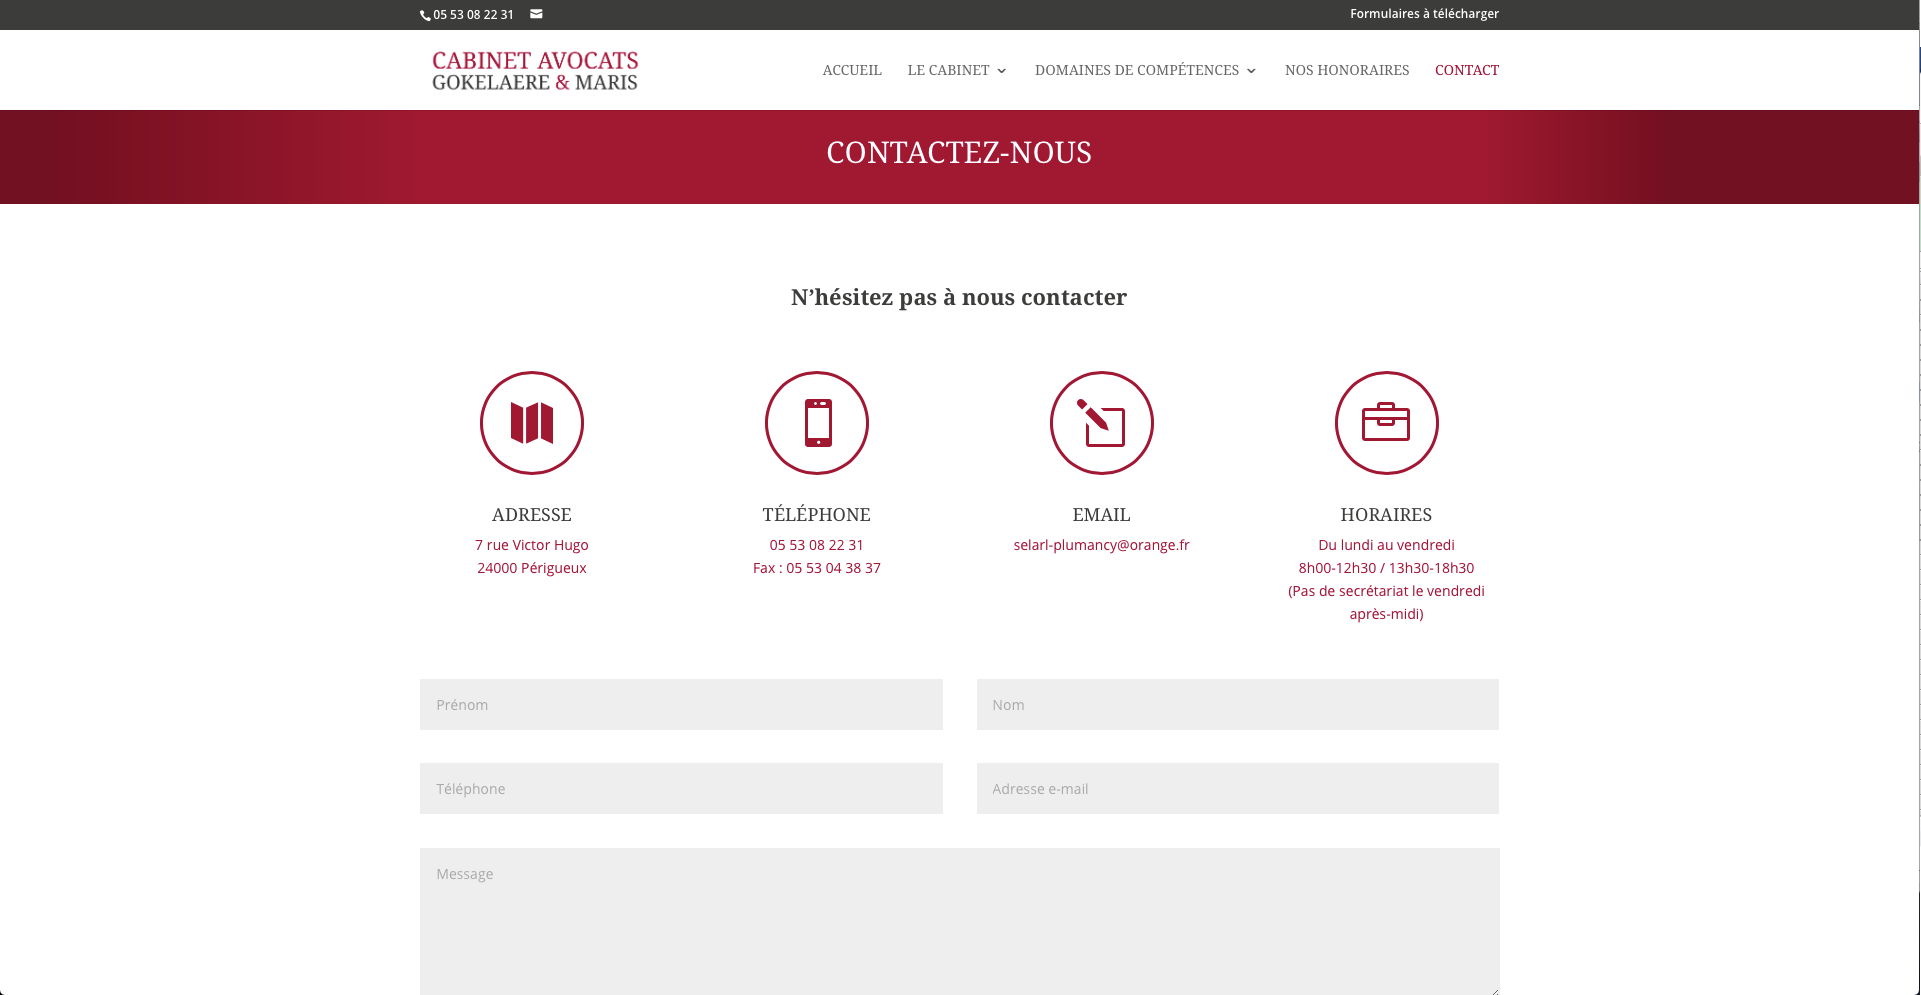 creation-site-internet-cabinet-d-avocats-gokelaere-maris-dordogne